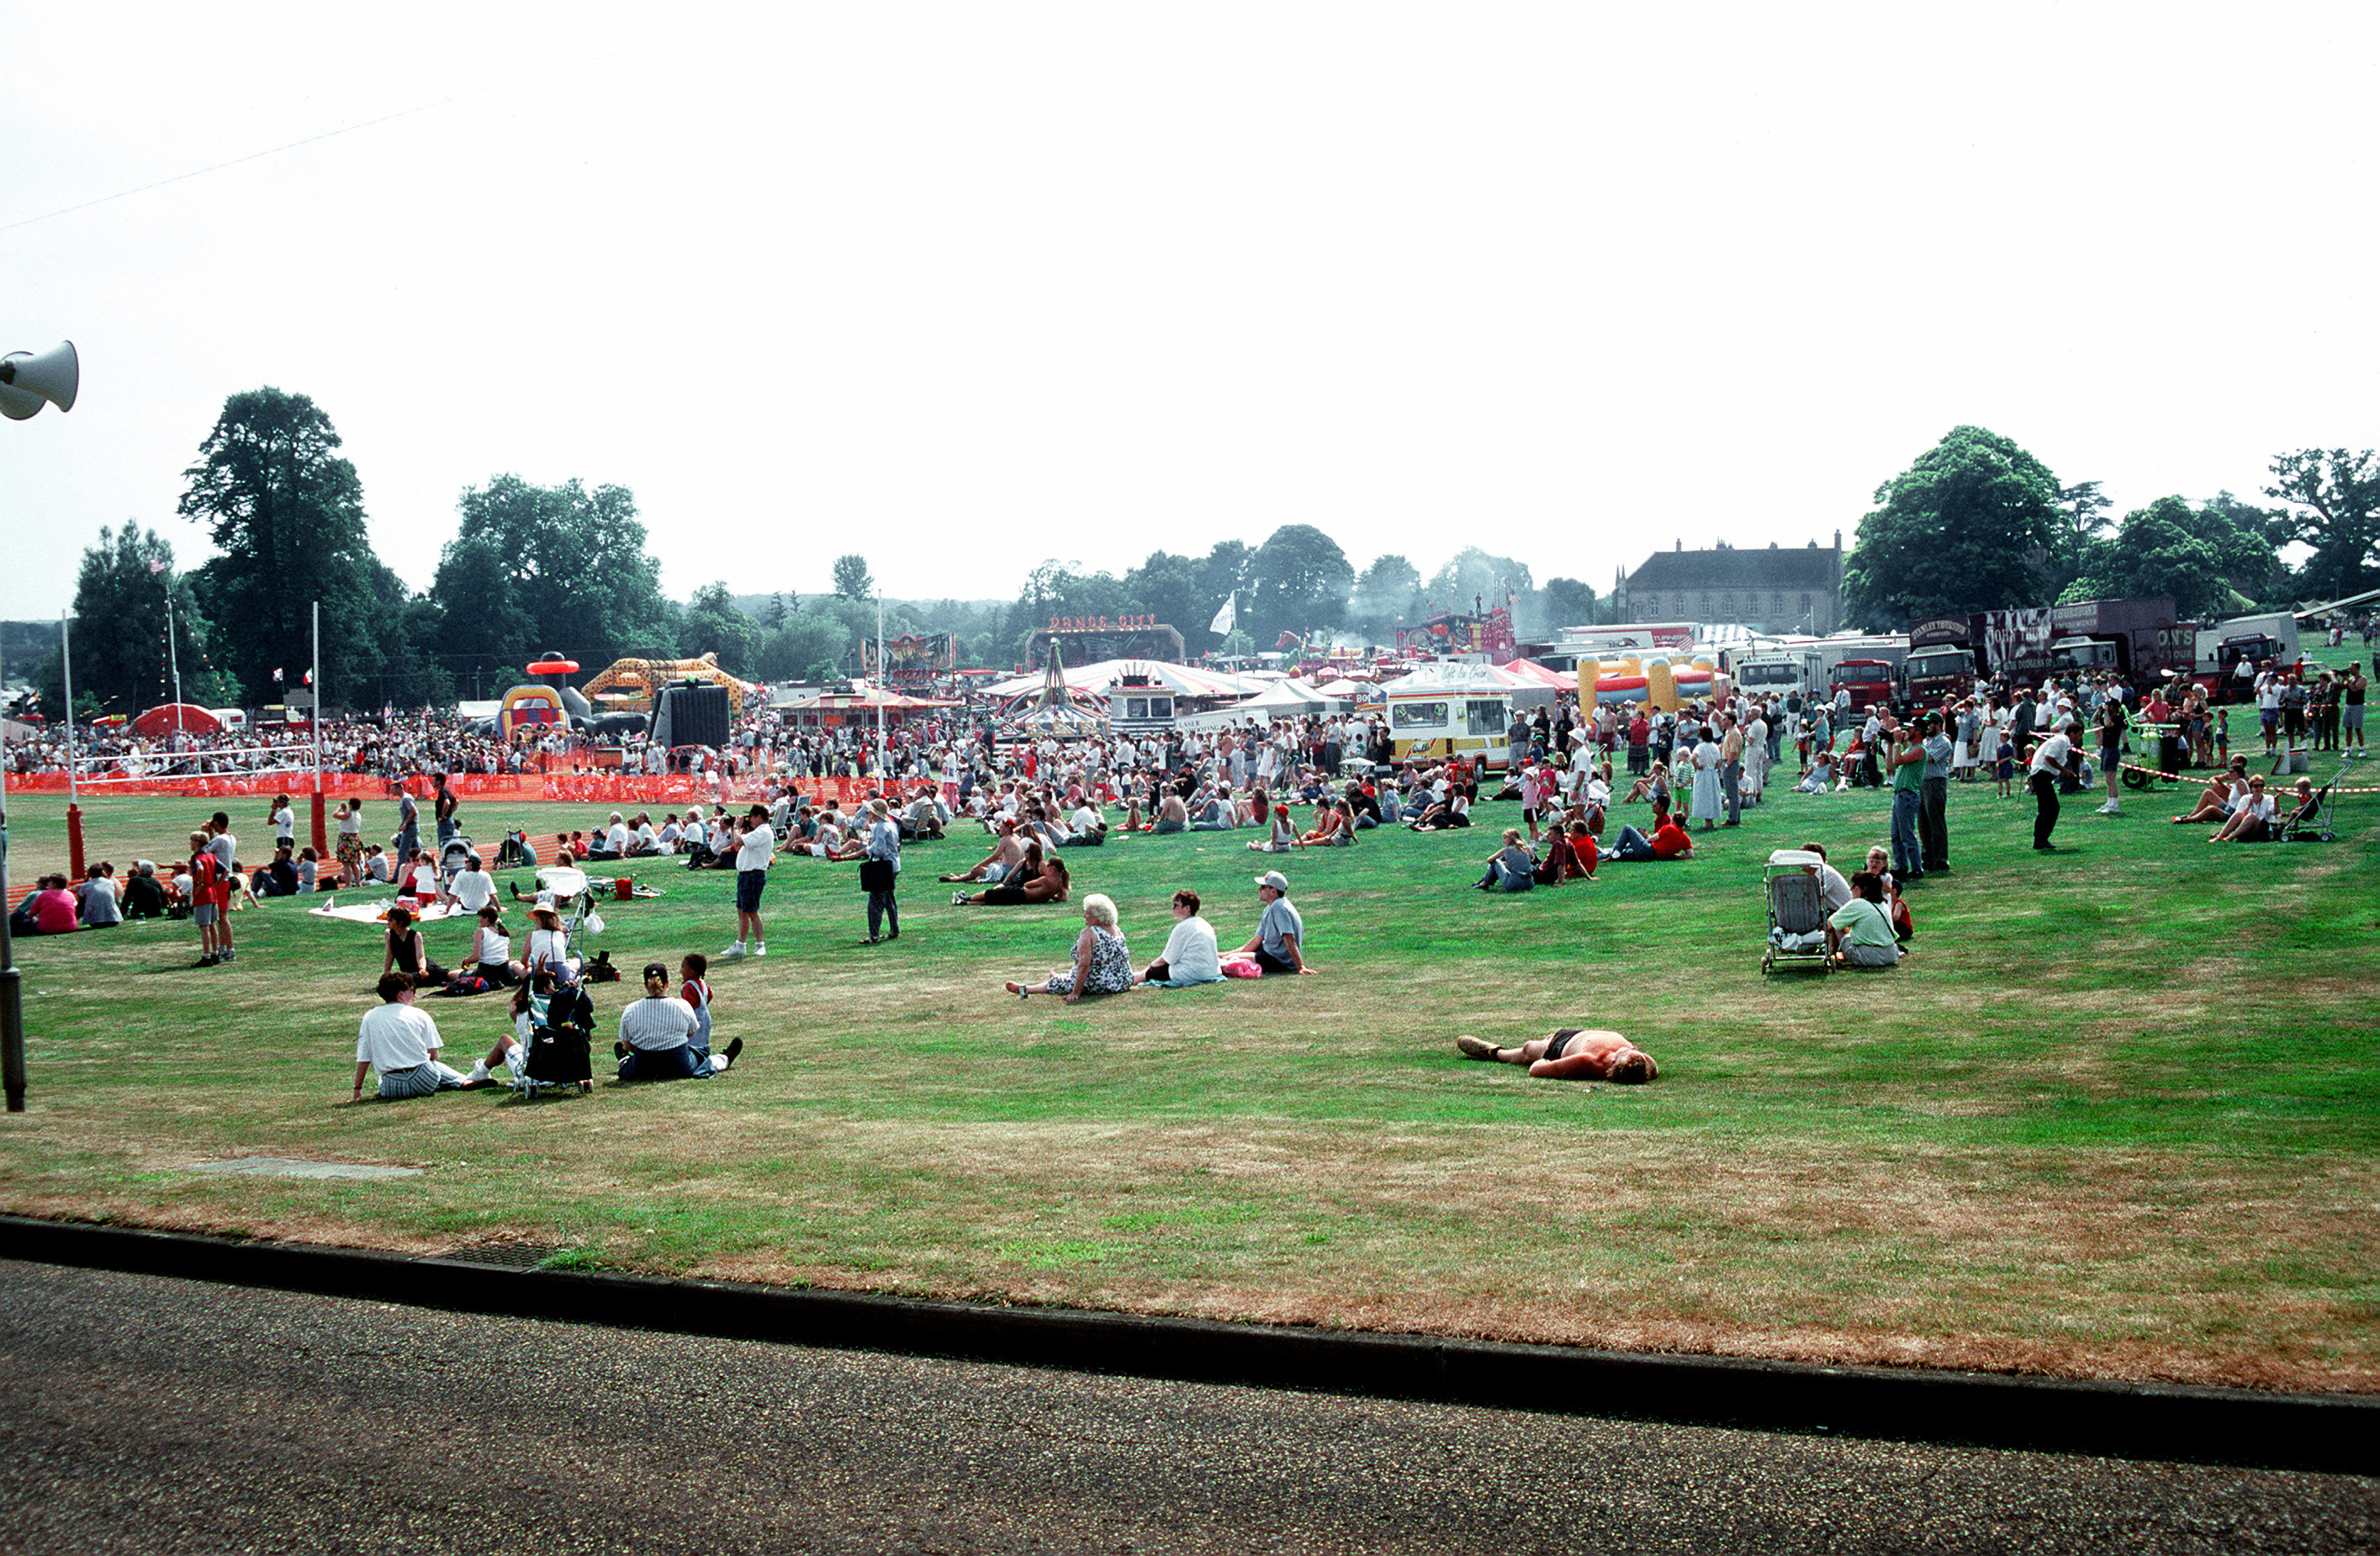 An overview of the crowd ad the RAF Chicksands